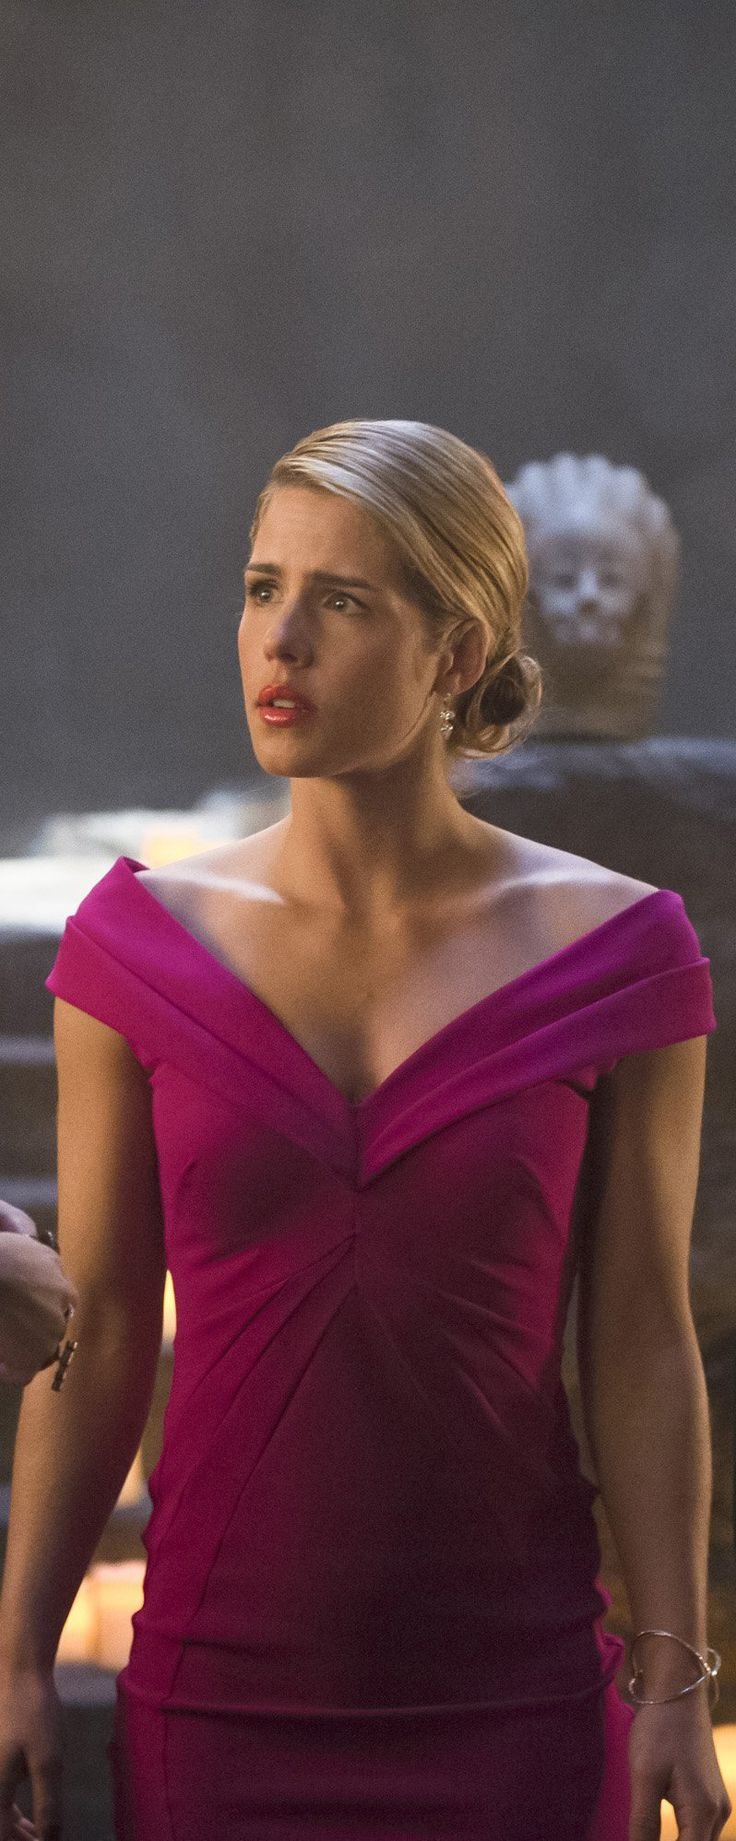 50 best images about emily bett rickards on pinterest actresses cocktail dresses and arrow tv. Black Bedroom Furniture Sets. Home Design Ideas